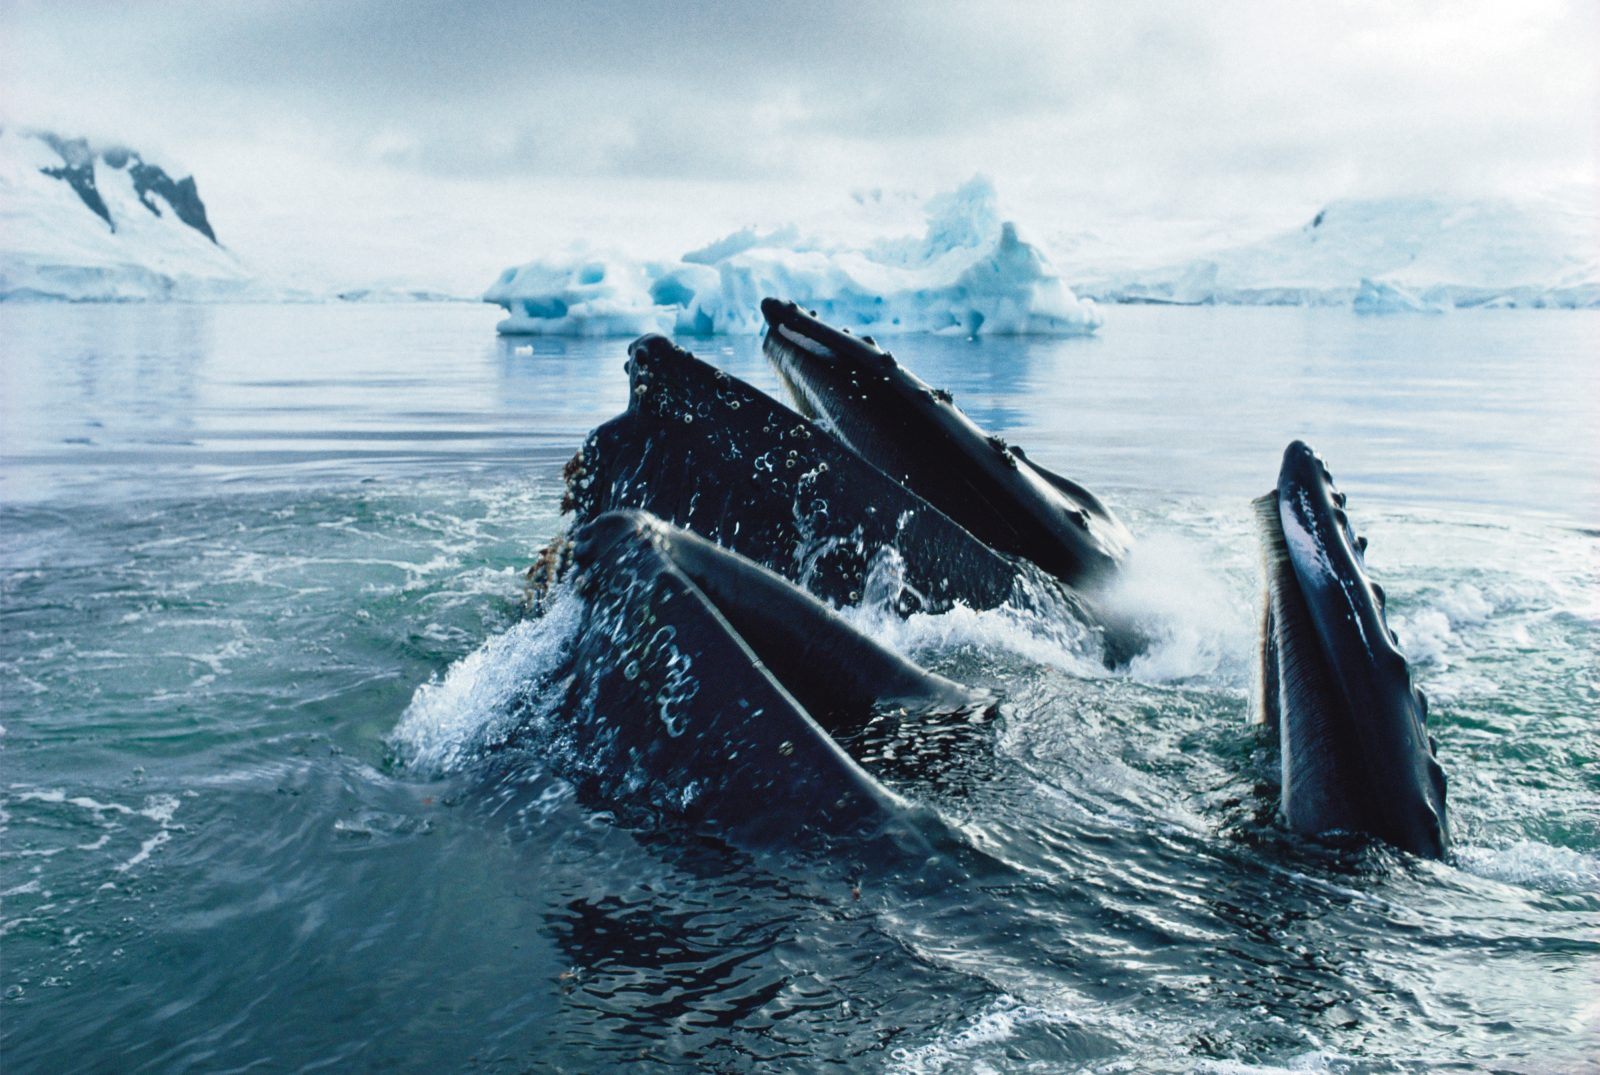 Humpback whales (Megaptera novaeangliae) gorge in the krill-rich Antarctic waters. Krill are the cornerstone food of whales, Antarctic fish, seals and birds.